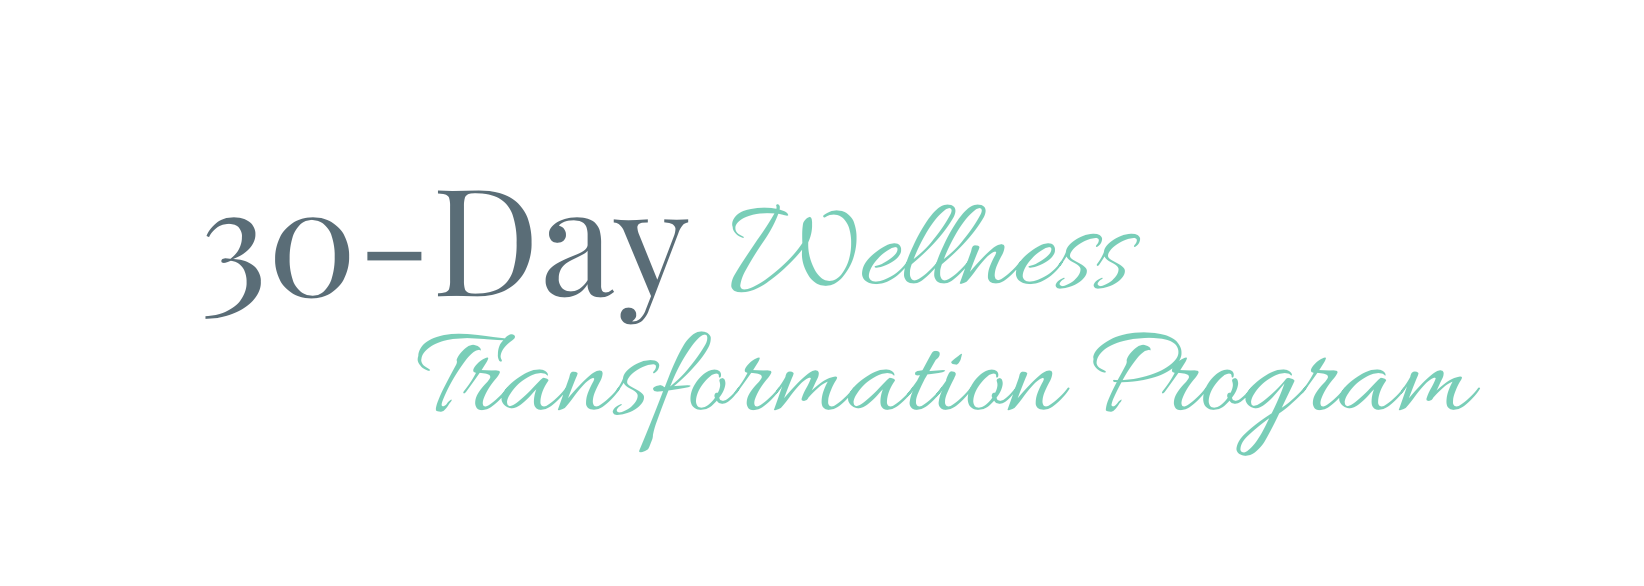 30-Day Wellness Transformation Program